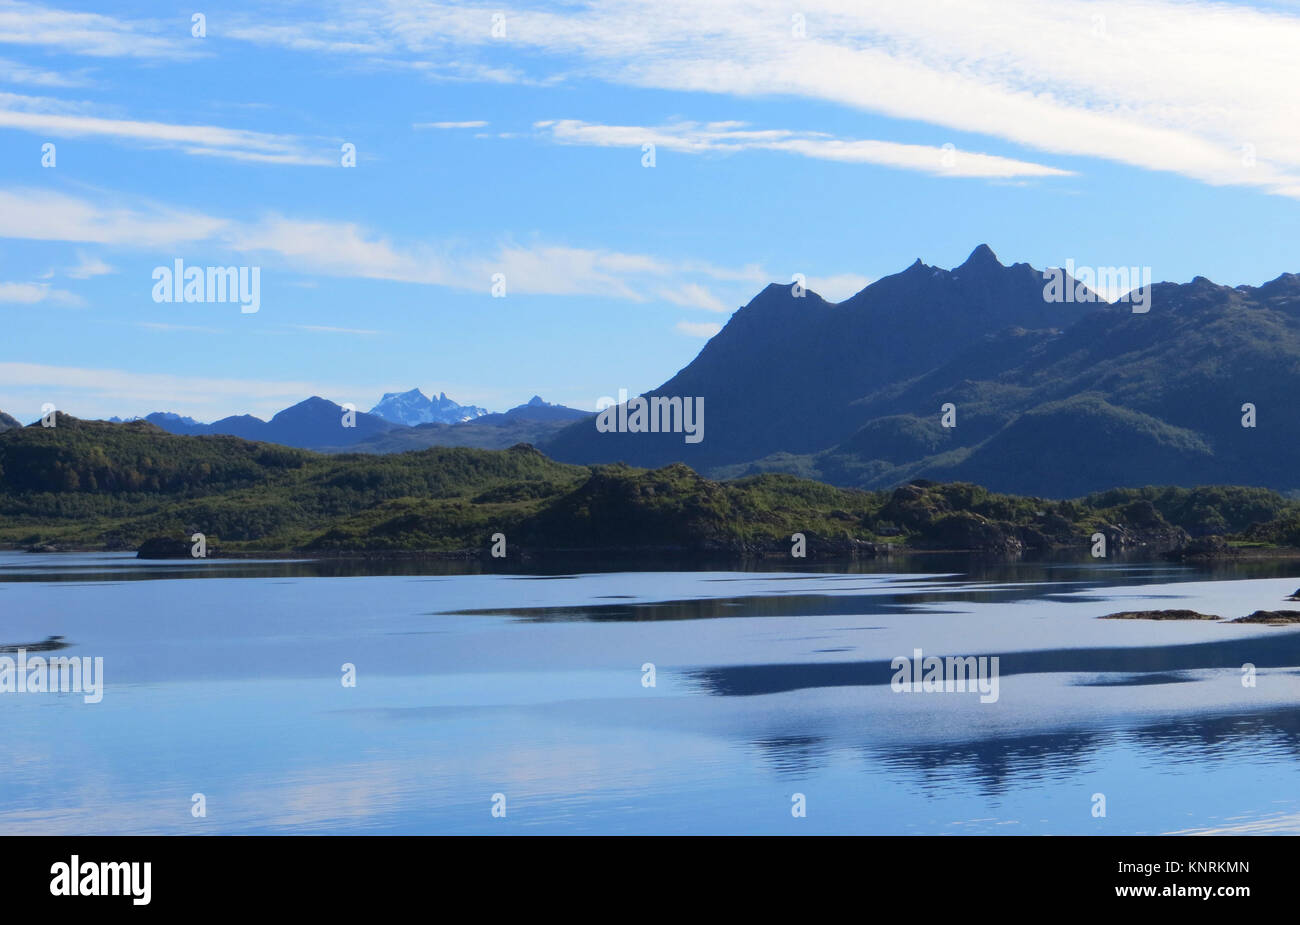 Calming shot of the mountains in Norway. - Stock Image